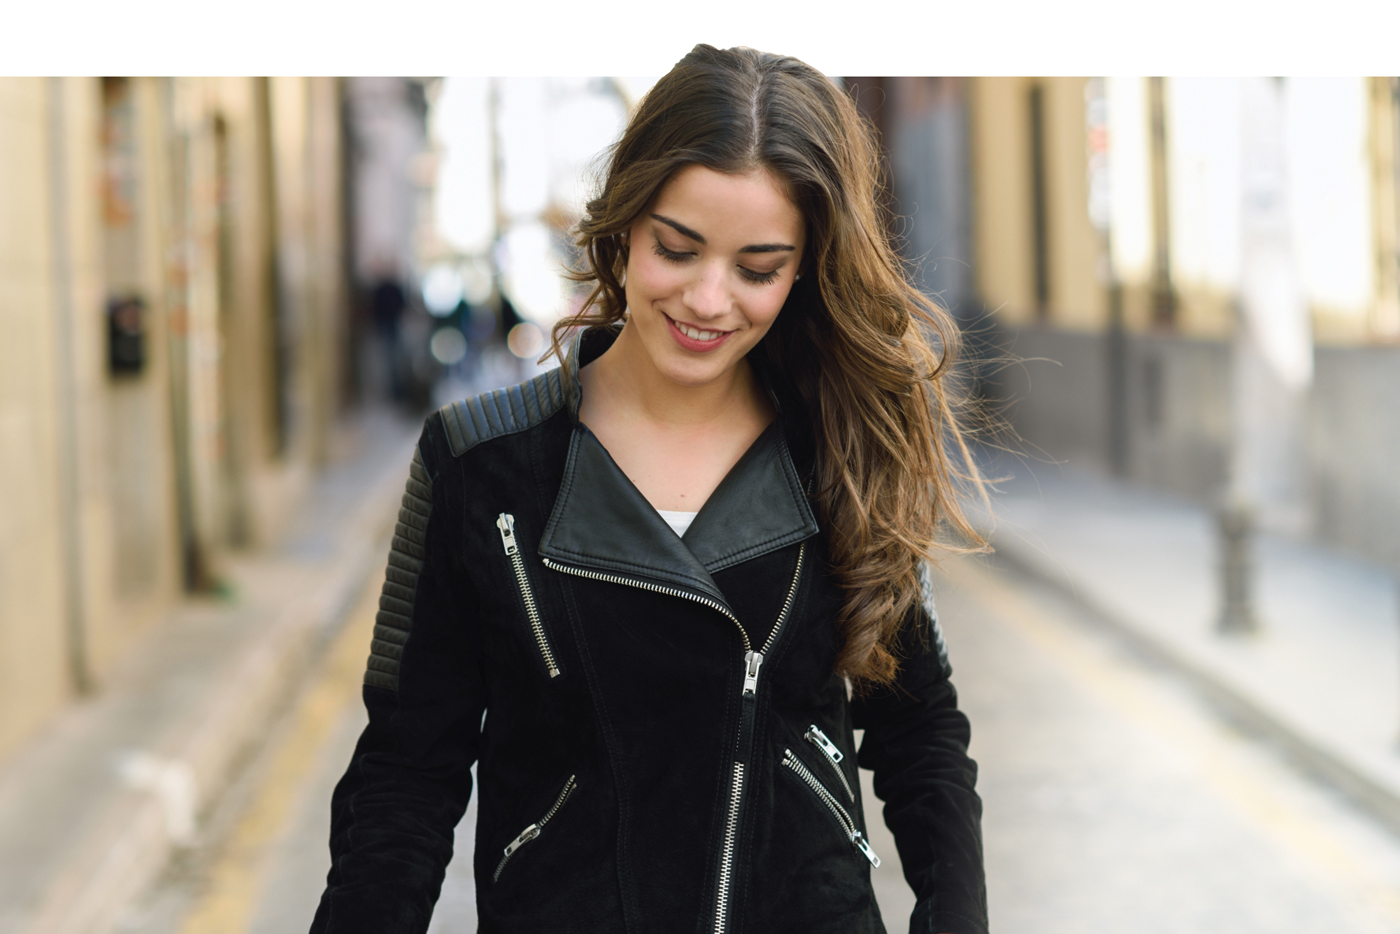 Chic jackets to keep you warm while looking stylish.